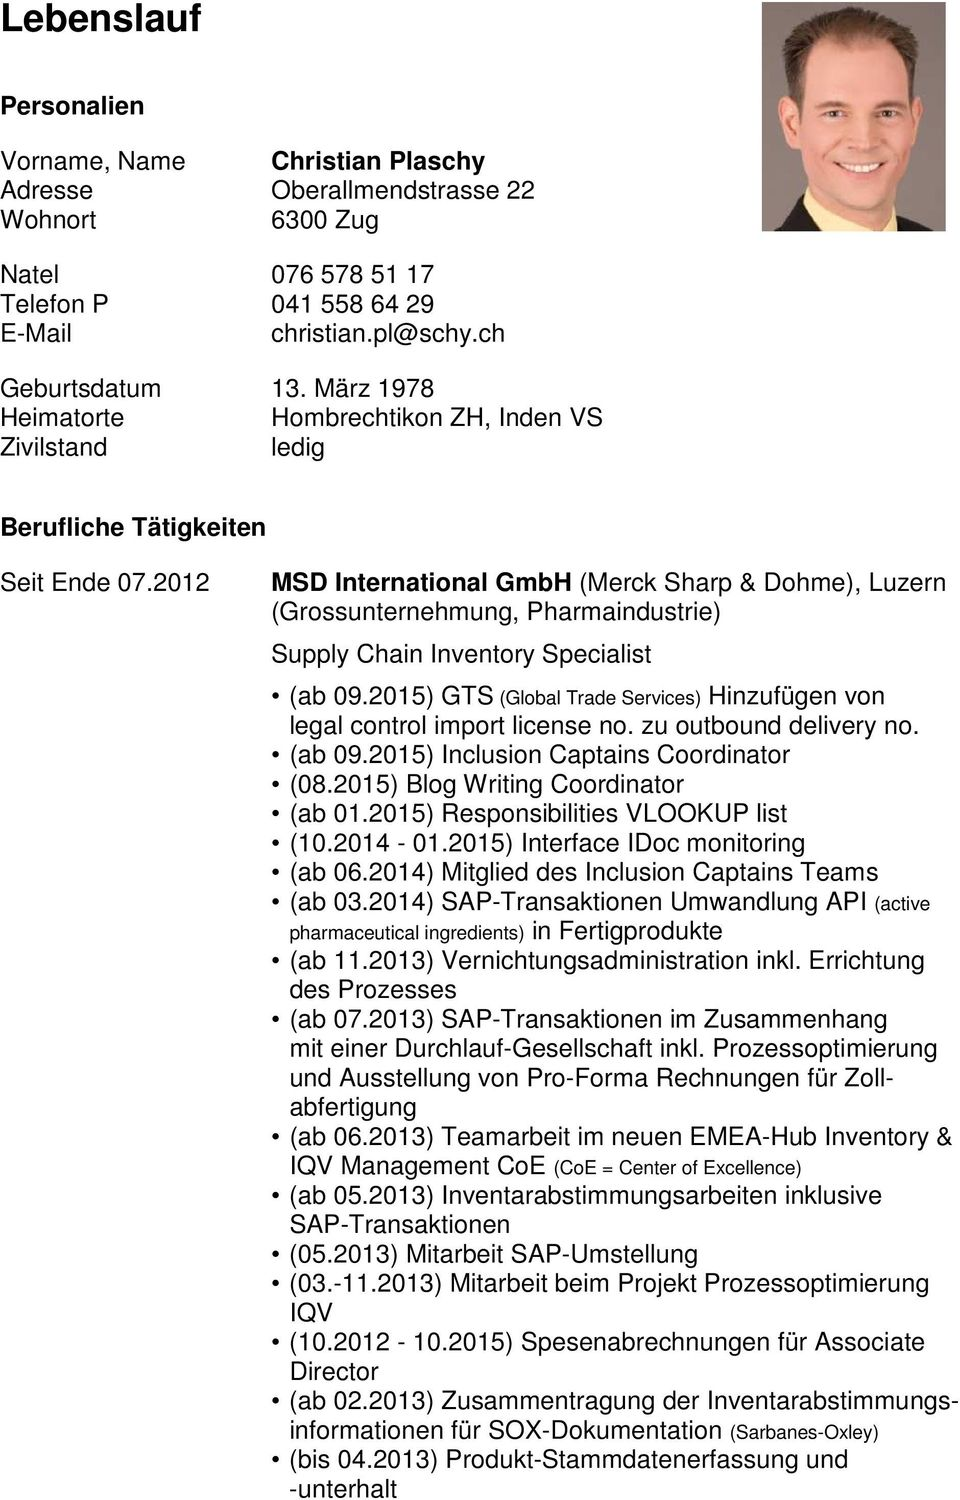 2012 MSD International GmbH (Merck Sharp & Dohme), Luzern  (Grossunternehmung, Pharmaindustrie